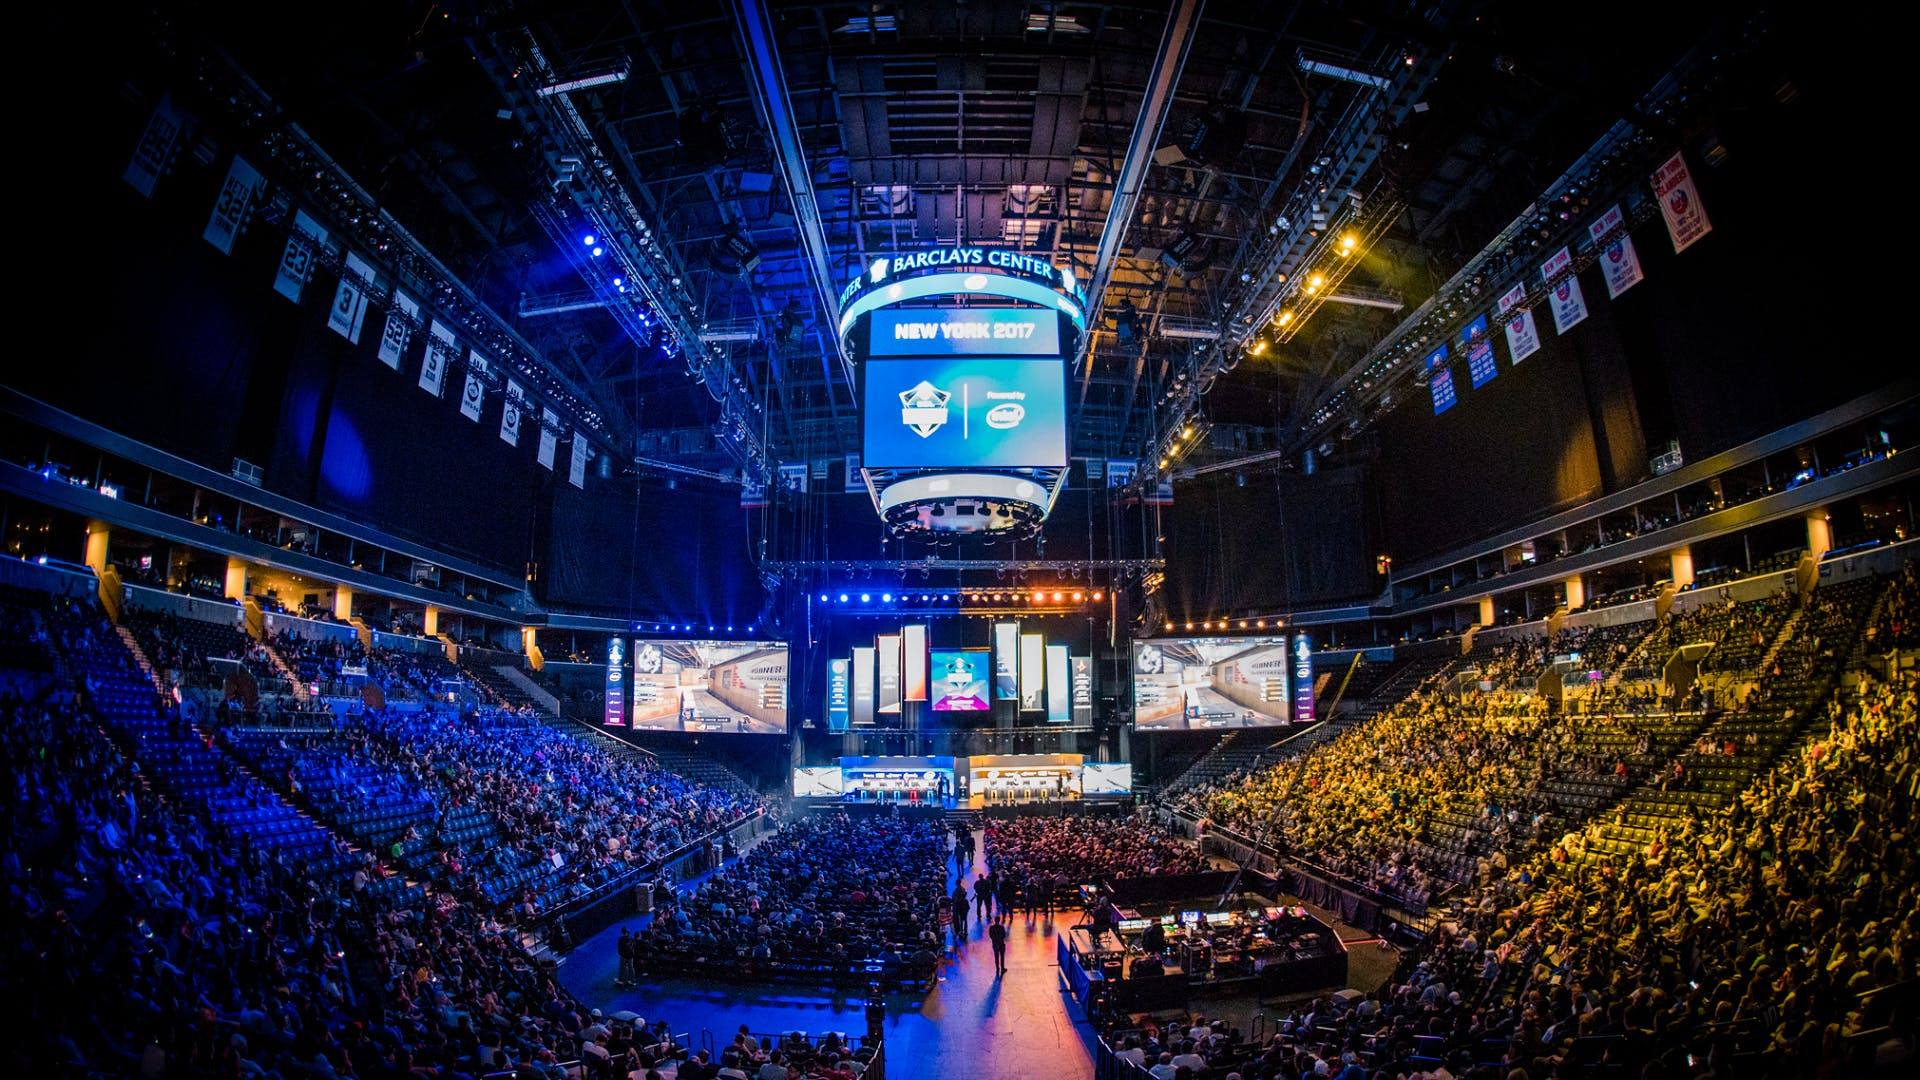 MSI extends EPL partnership for three more seasons after successful Dallas Finals